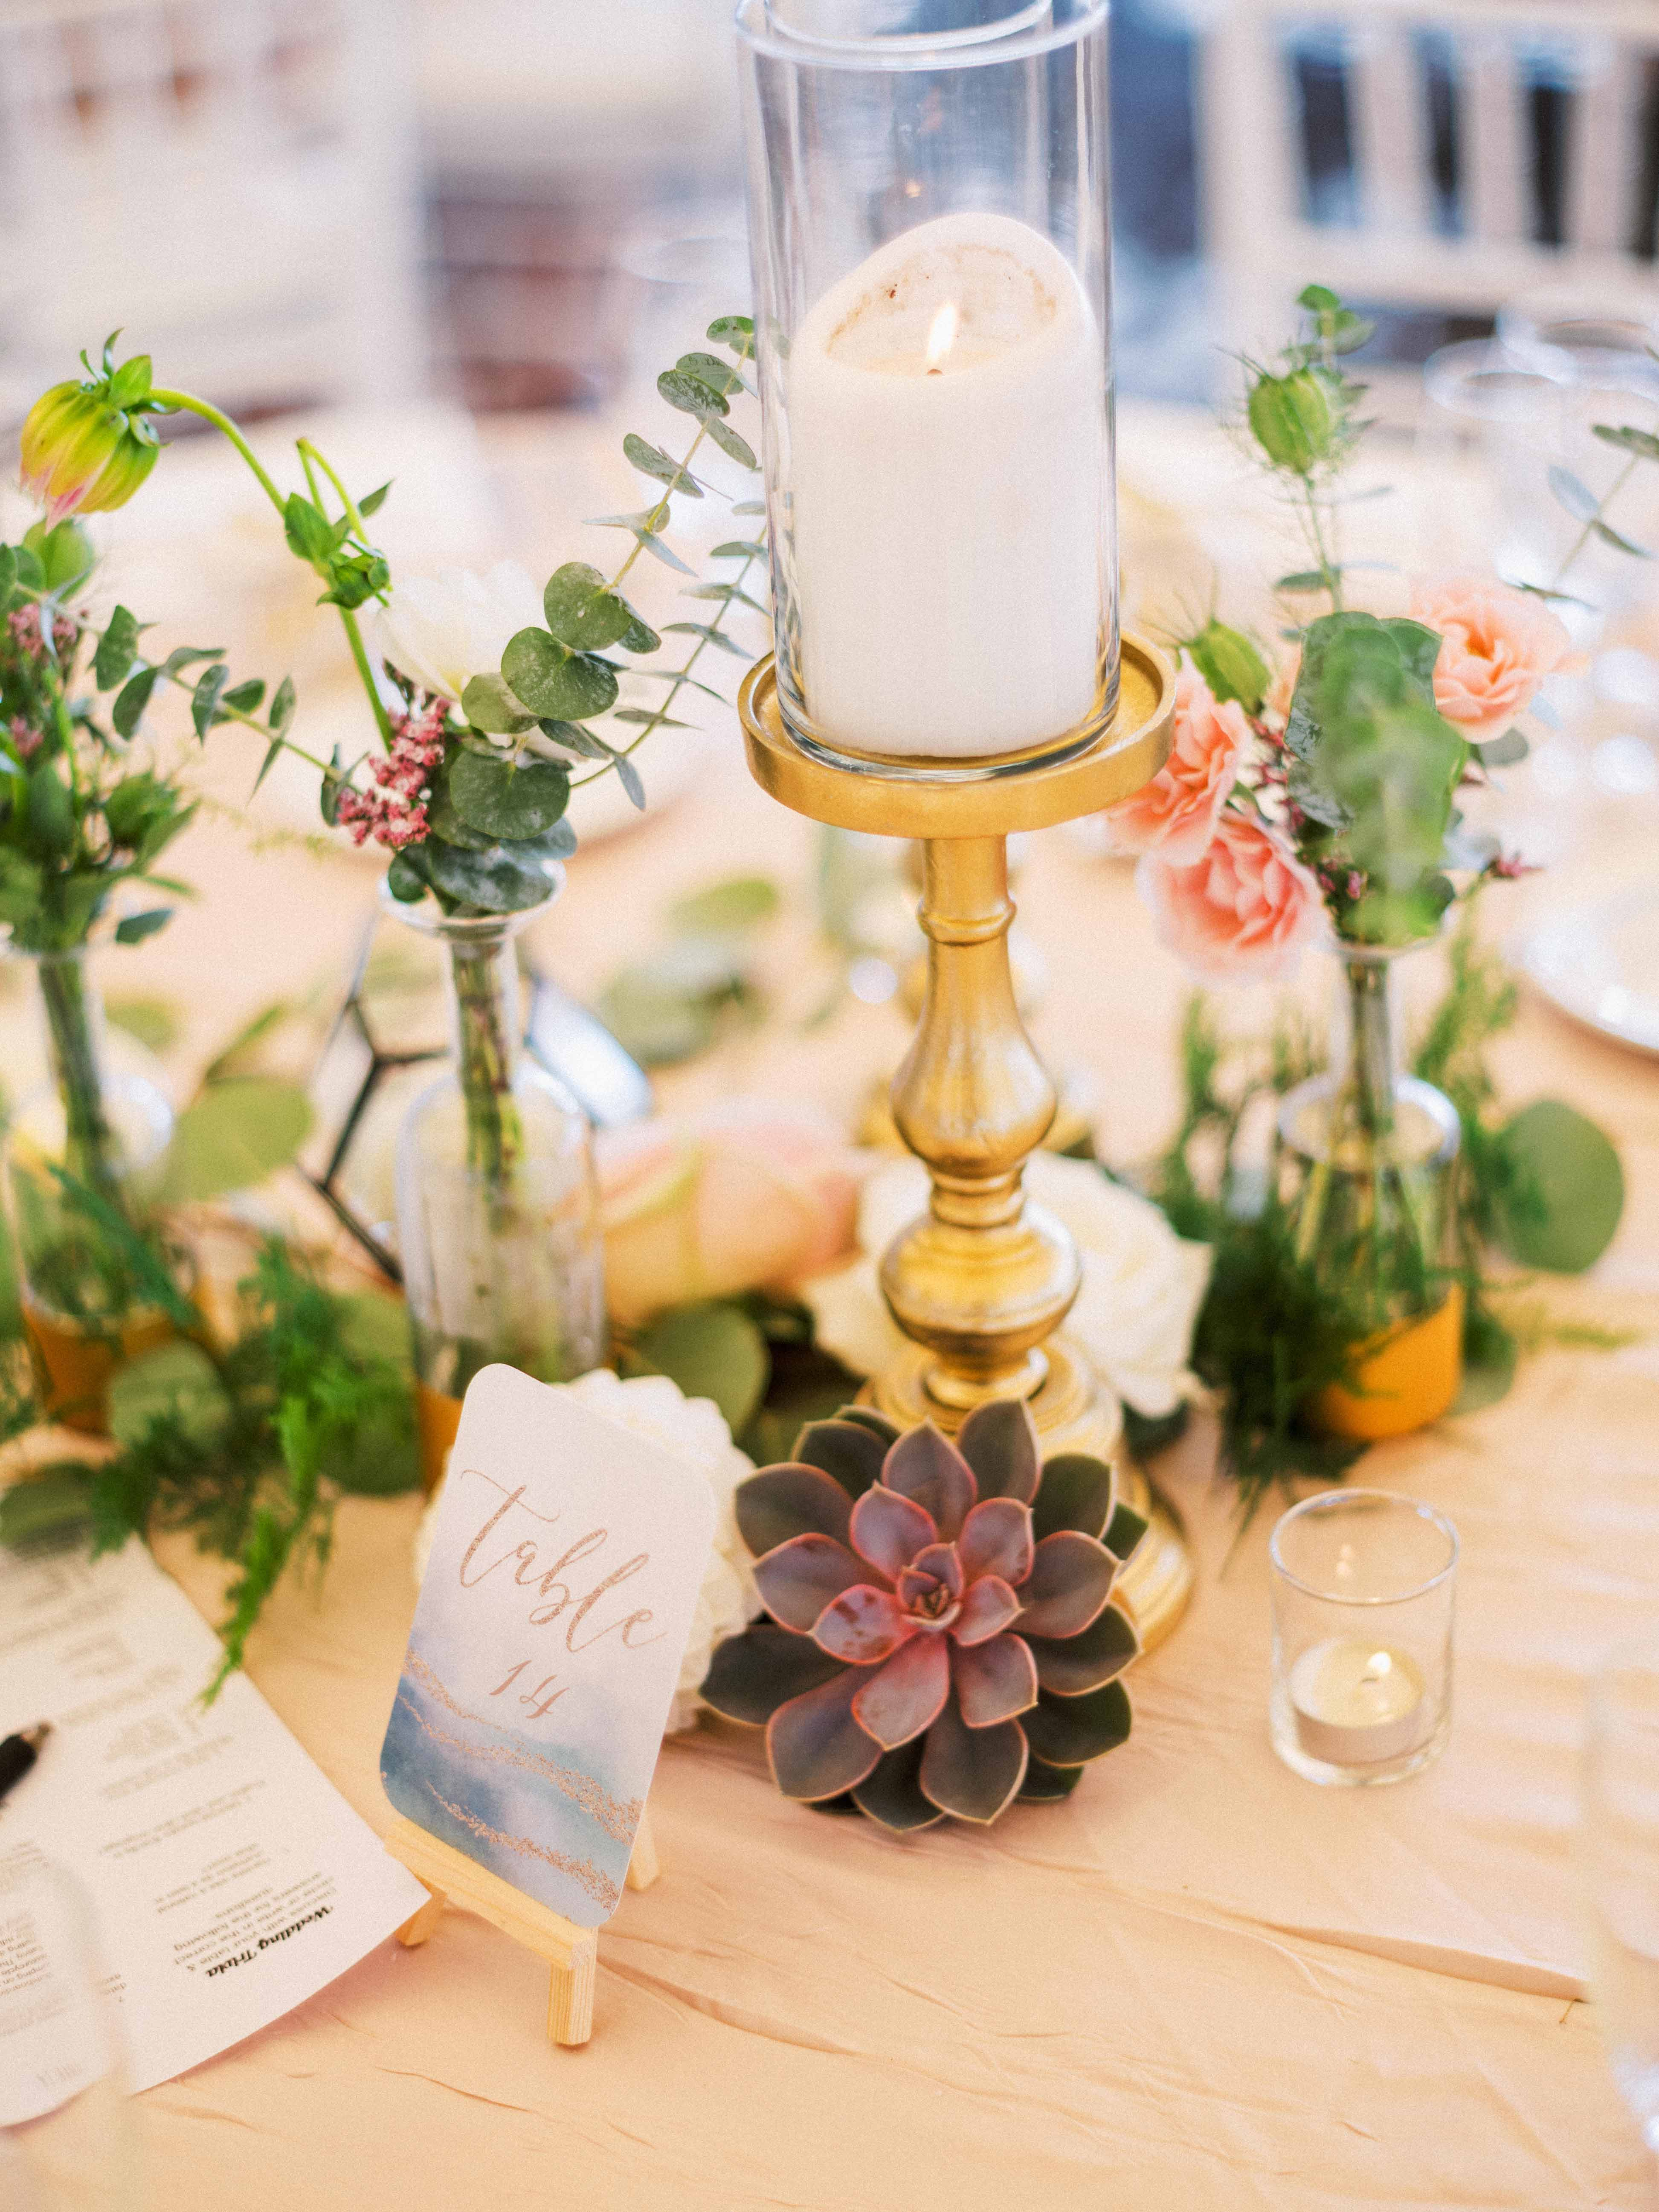 Centerpiece with candles and succulents - Woodmark Hotel Wedding by Flora Nova Design Seattle